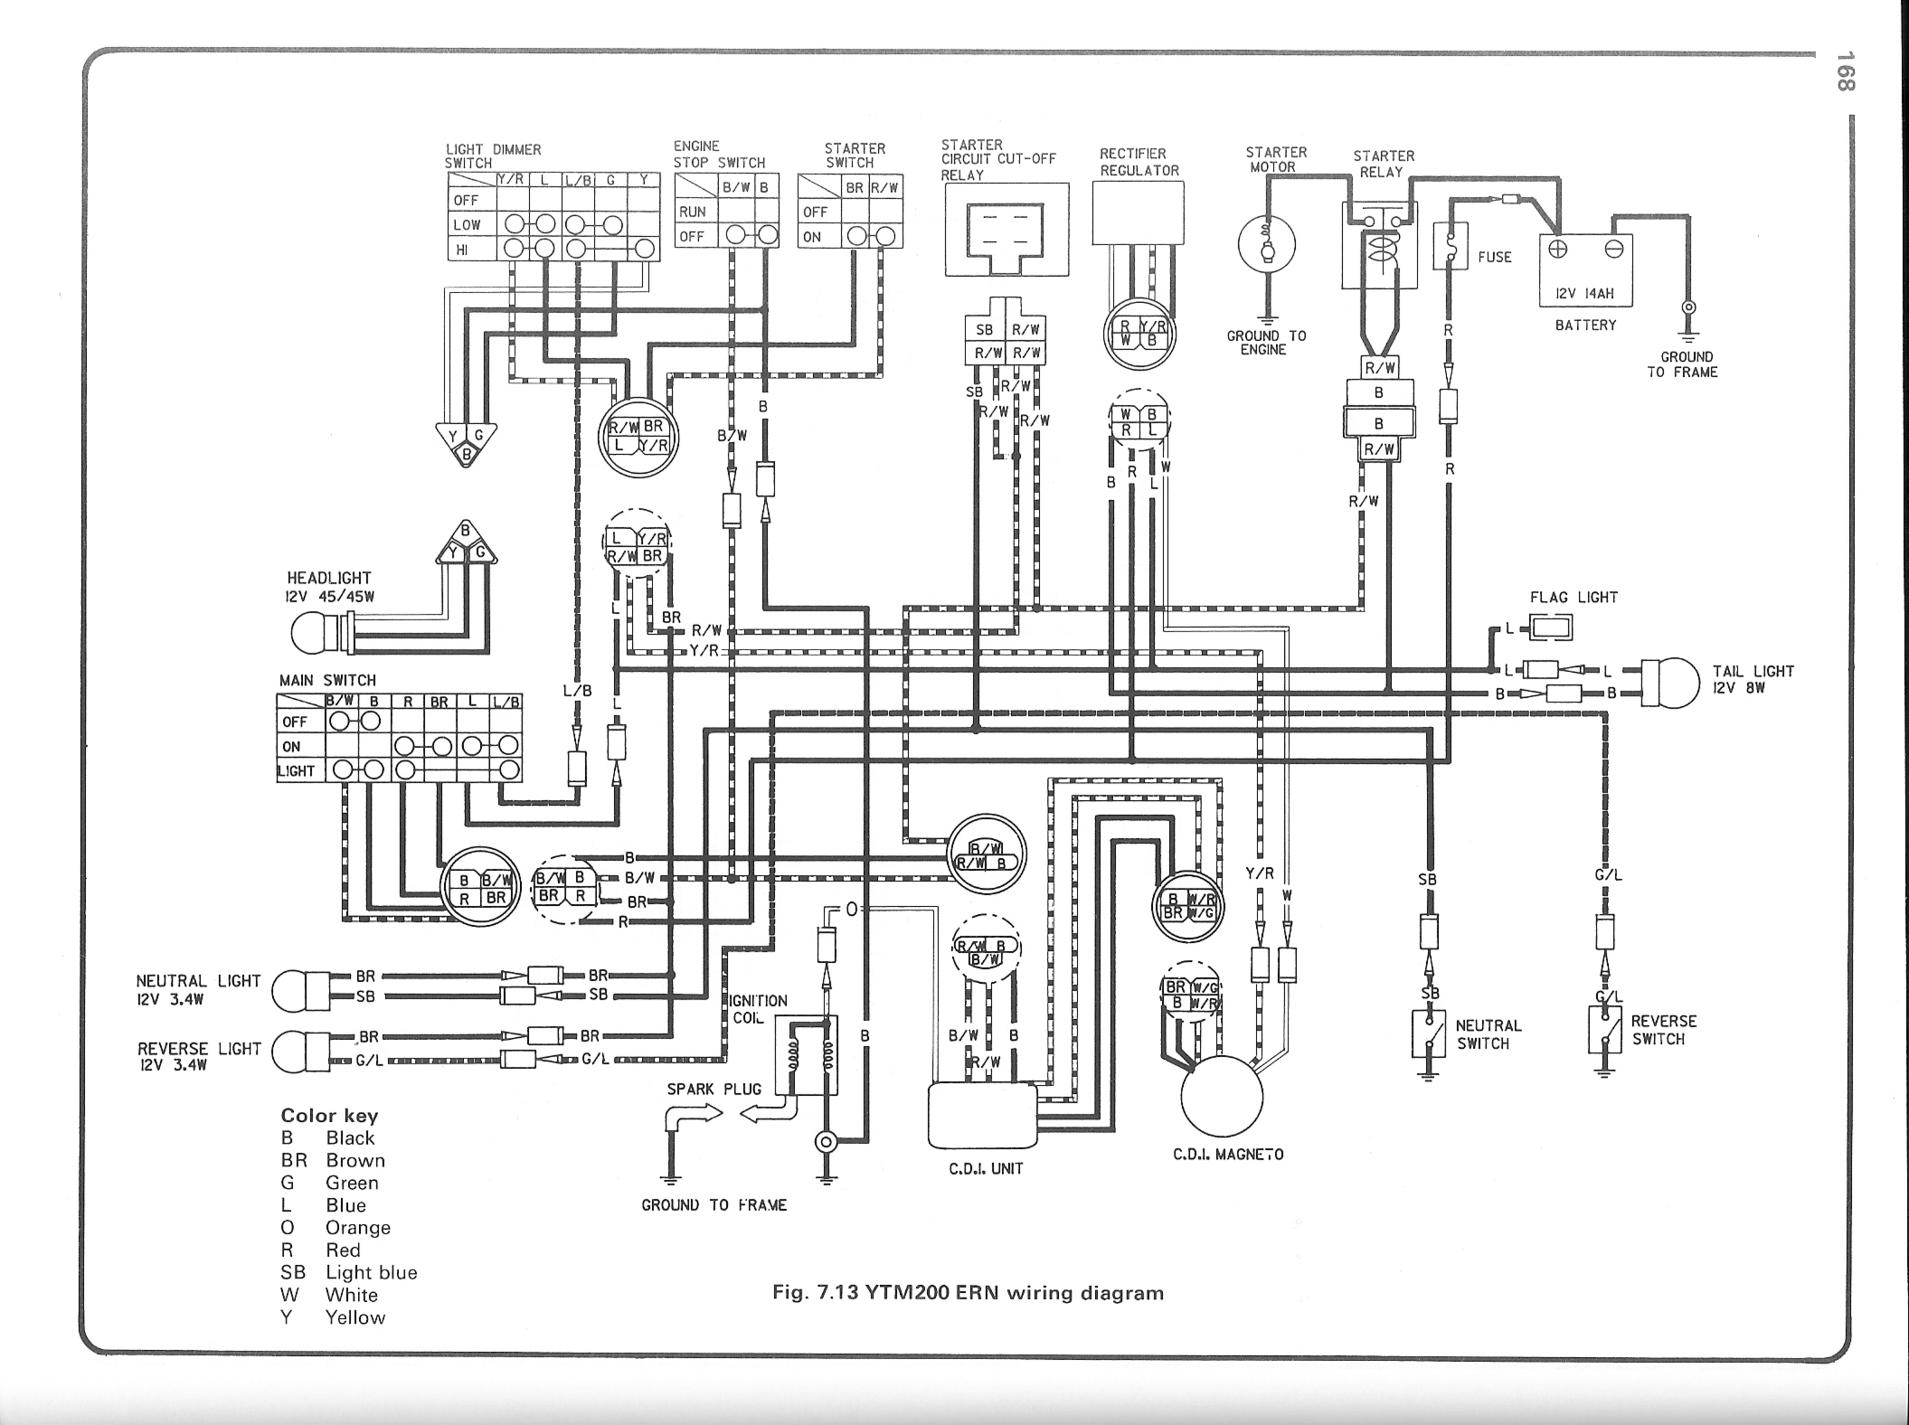 hyundai golf cart wiring diagram with 1987 Polaris Trail Boss 250 Wiring Diagram on 36 Volt Ezgo Golf Cart Ignition Switch Wiring Diagram additionally Wiring 48 Volt Club Car Precedent in addition Car Engine Piston Diagram additionally Yamaha Golf Cart G1a moreover 7229.